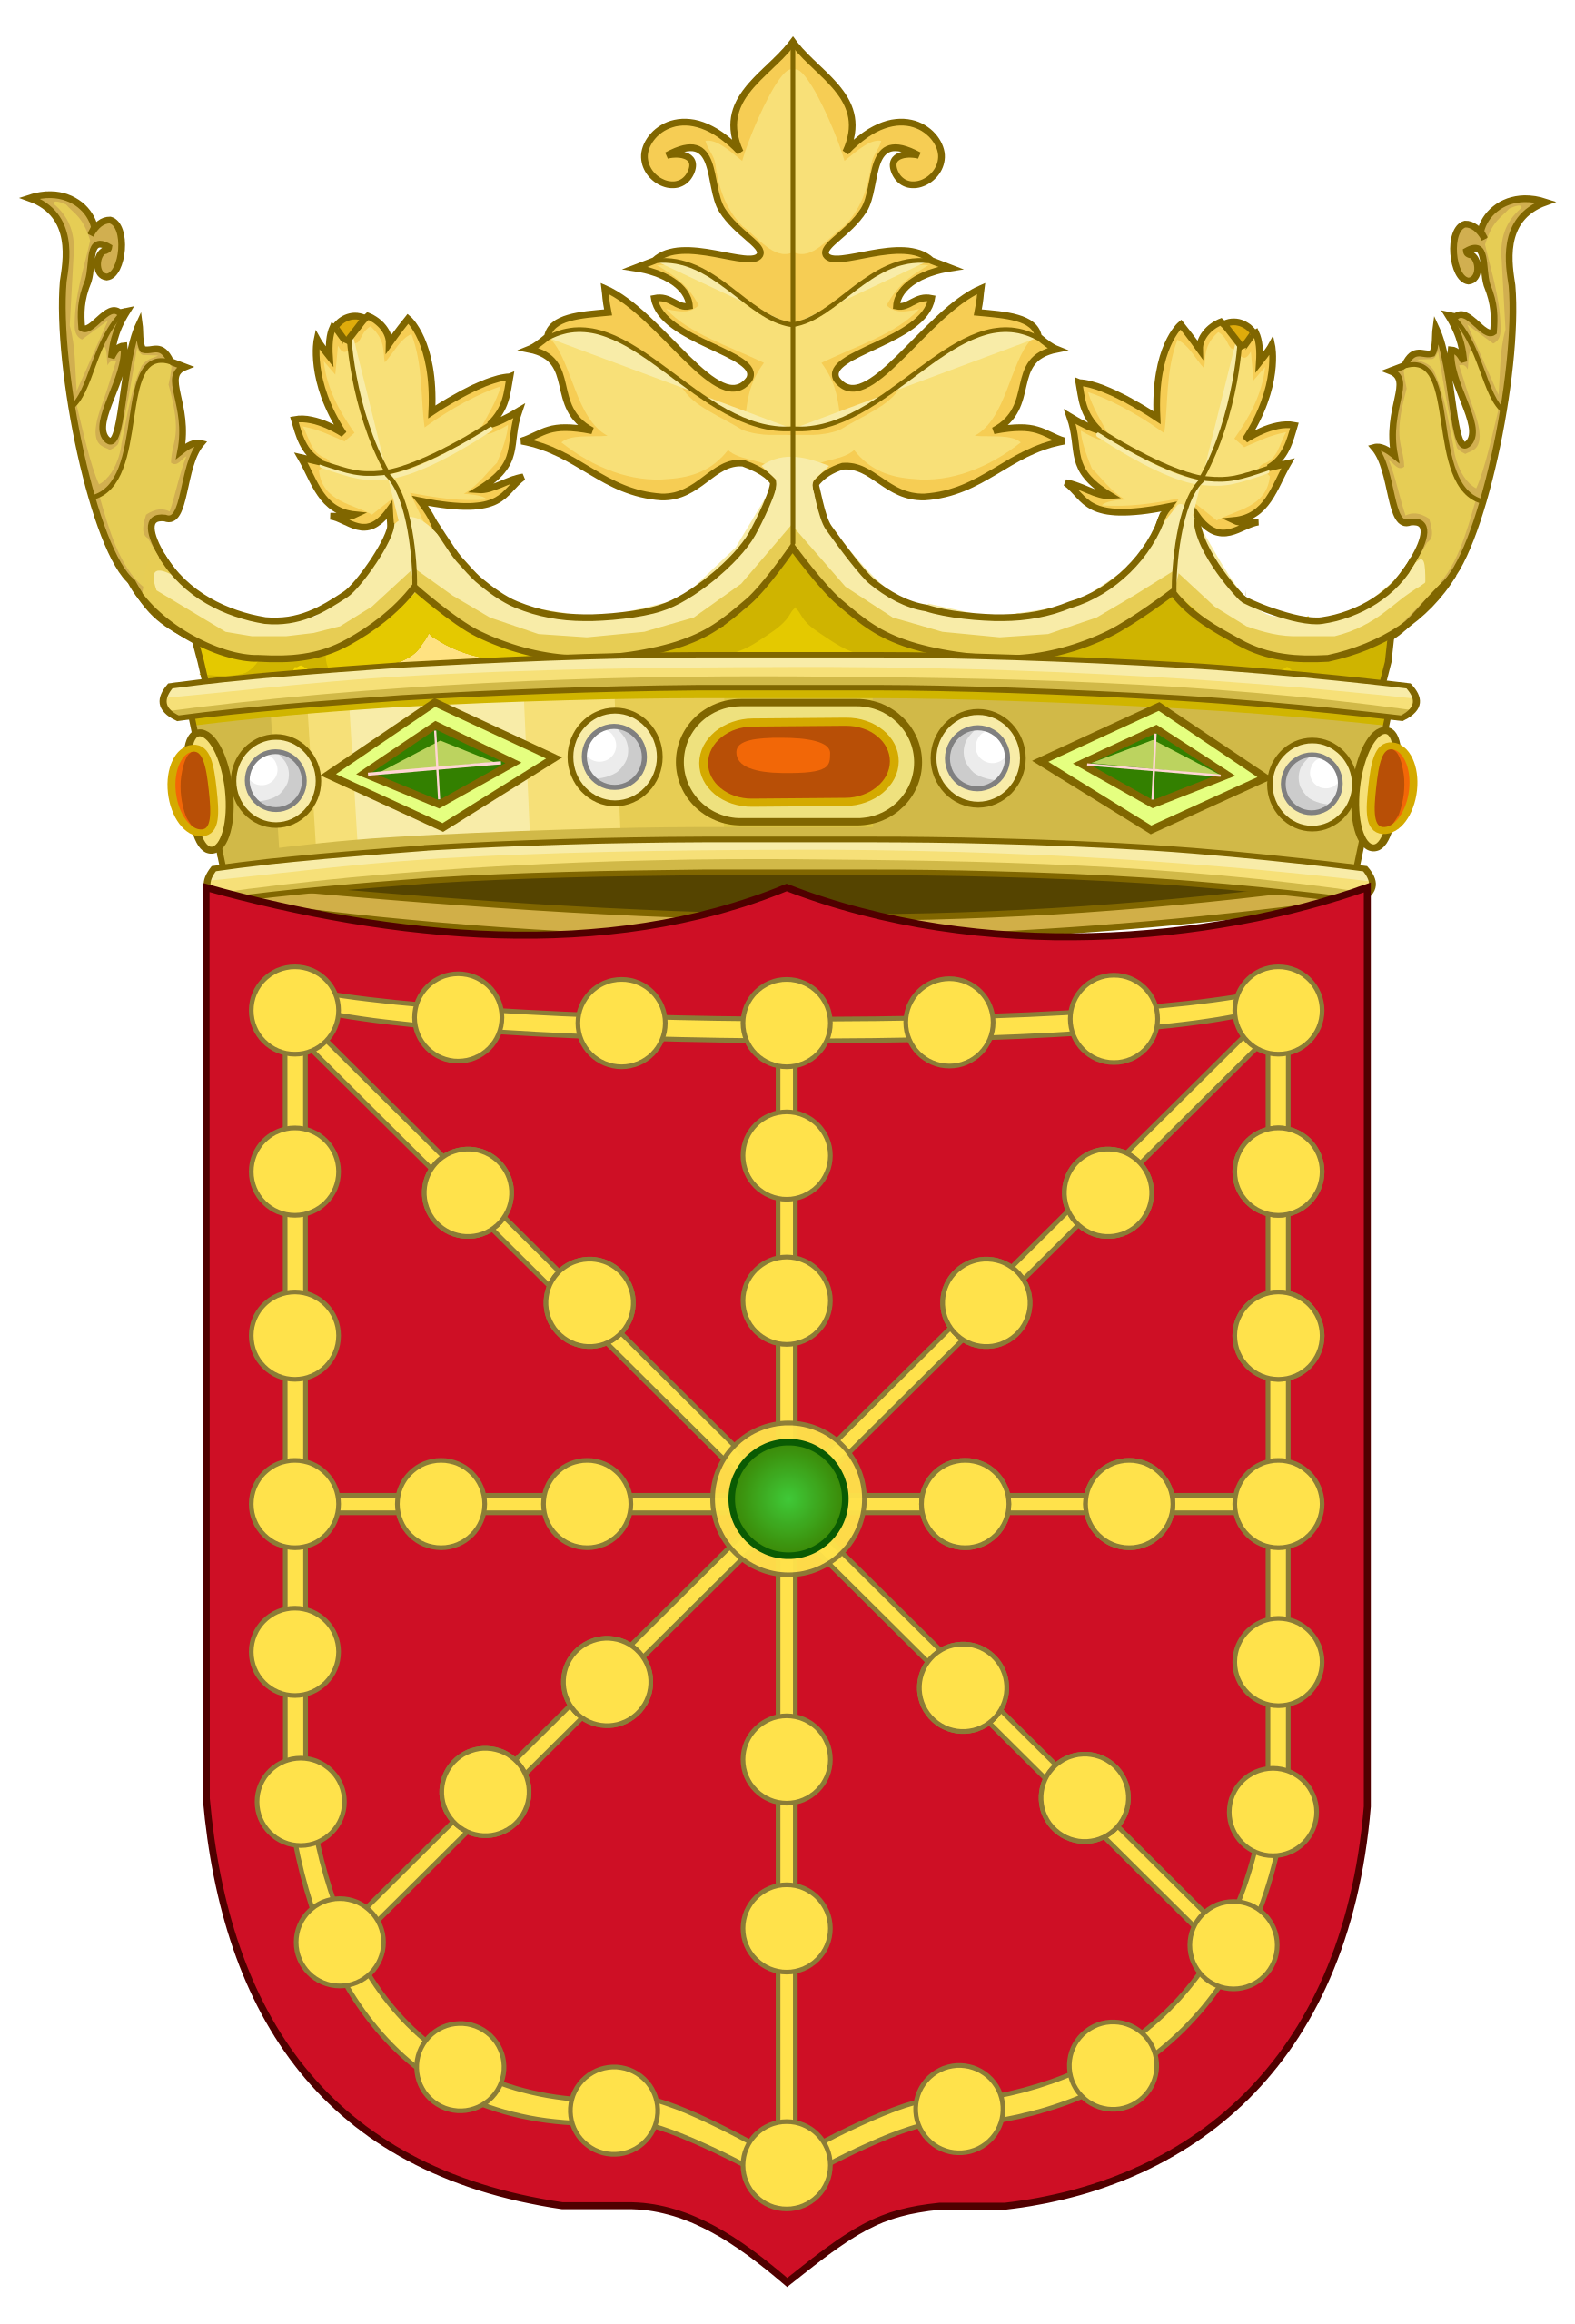 Coat of Arms of the Kings of Navarre since 1212